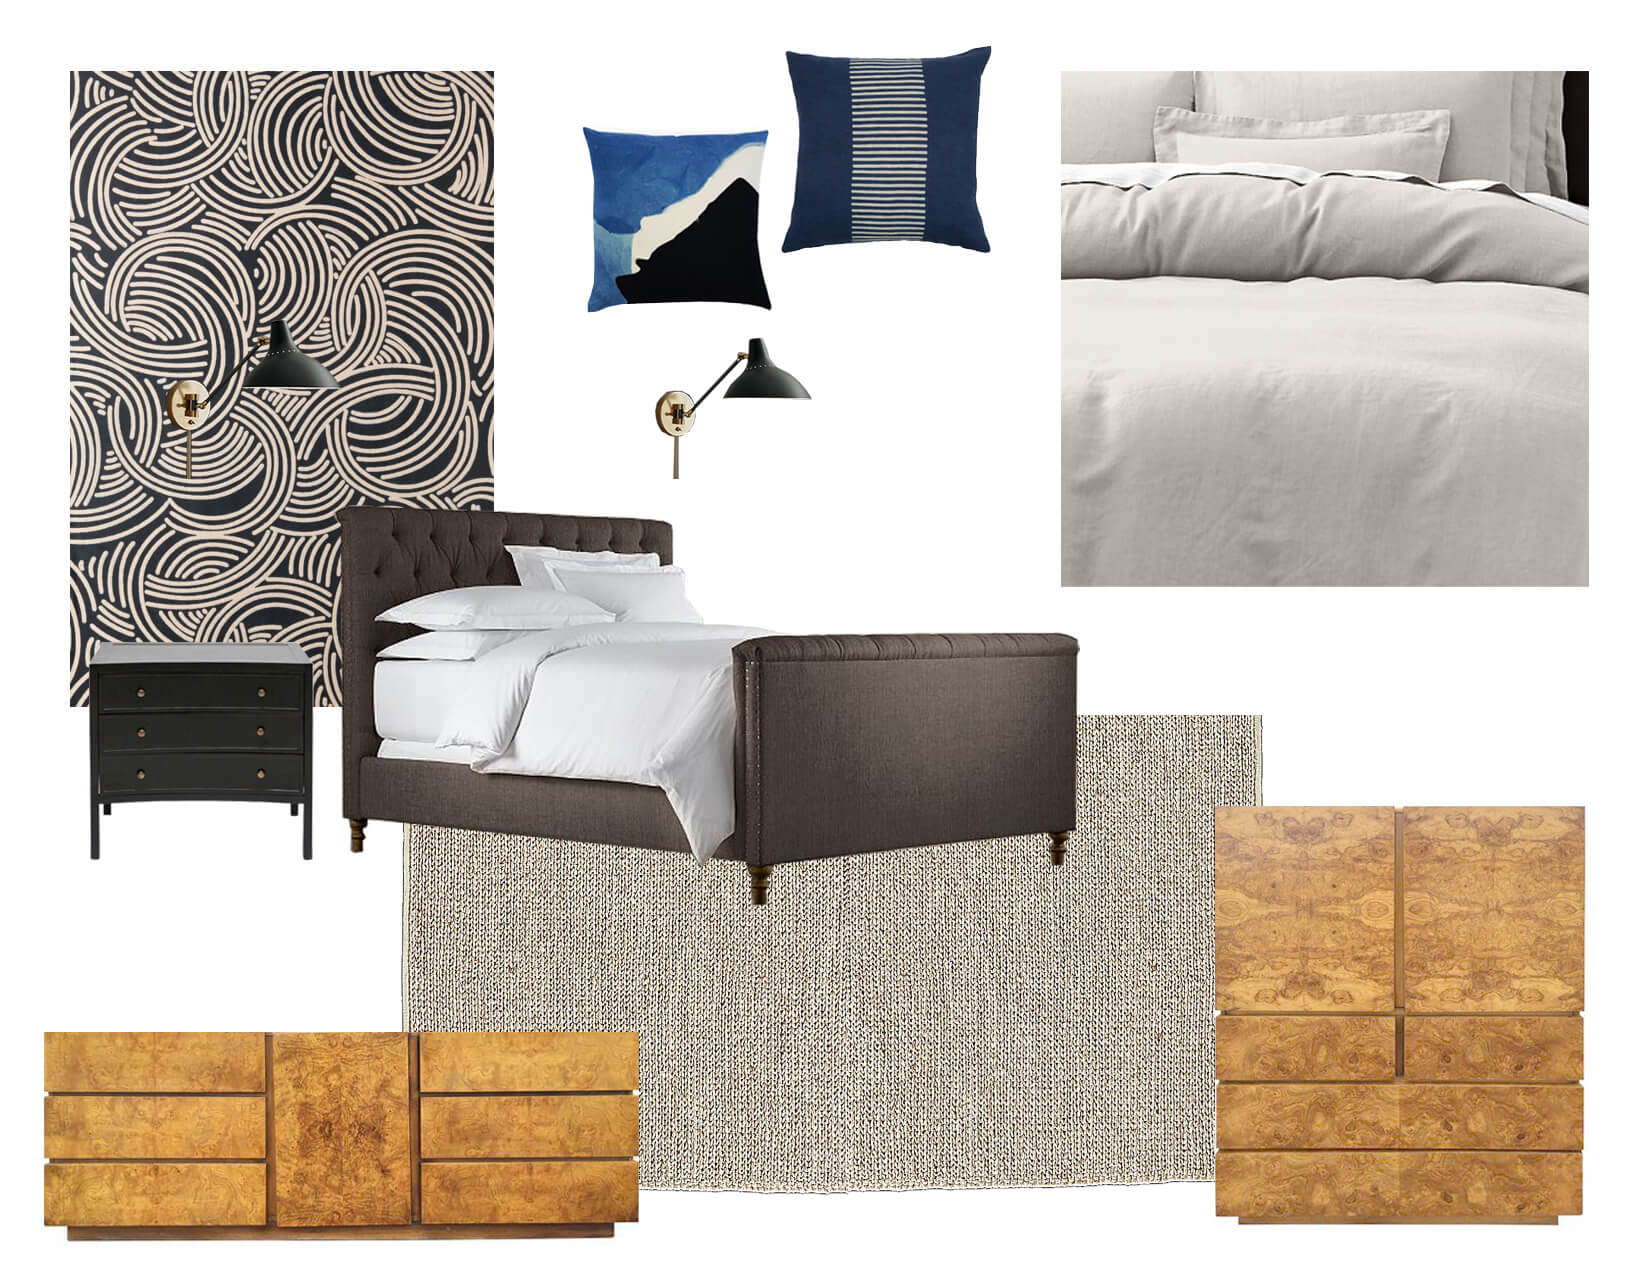 09_GINNY_MACDONALD_TRADITIONAL_BEDROOM_MOODBOARD